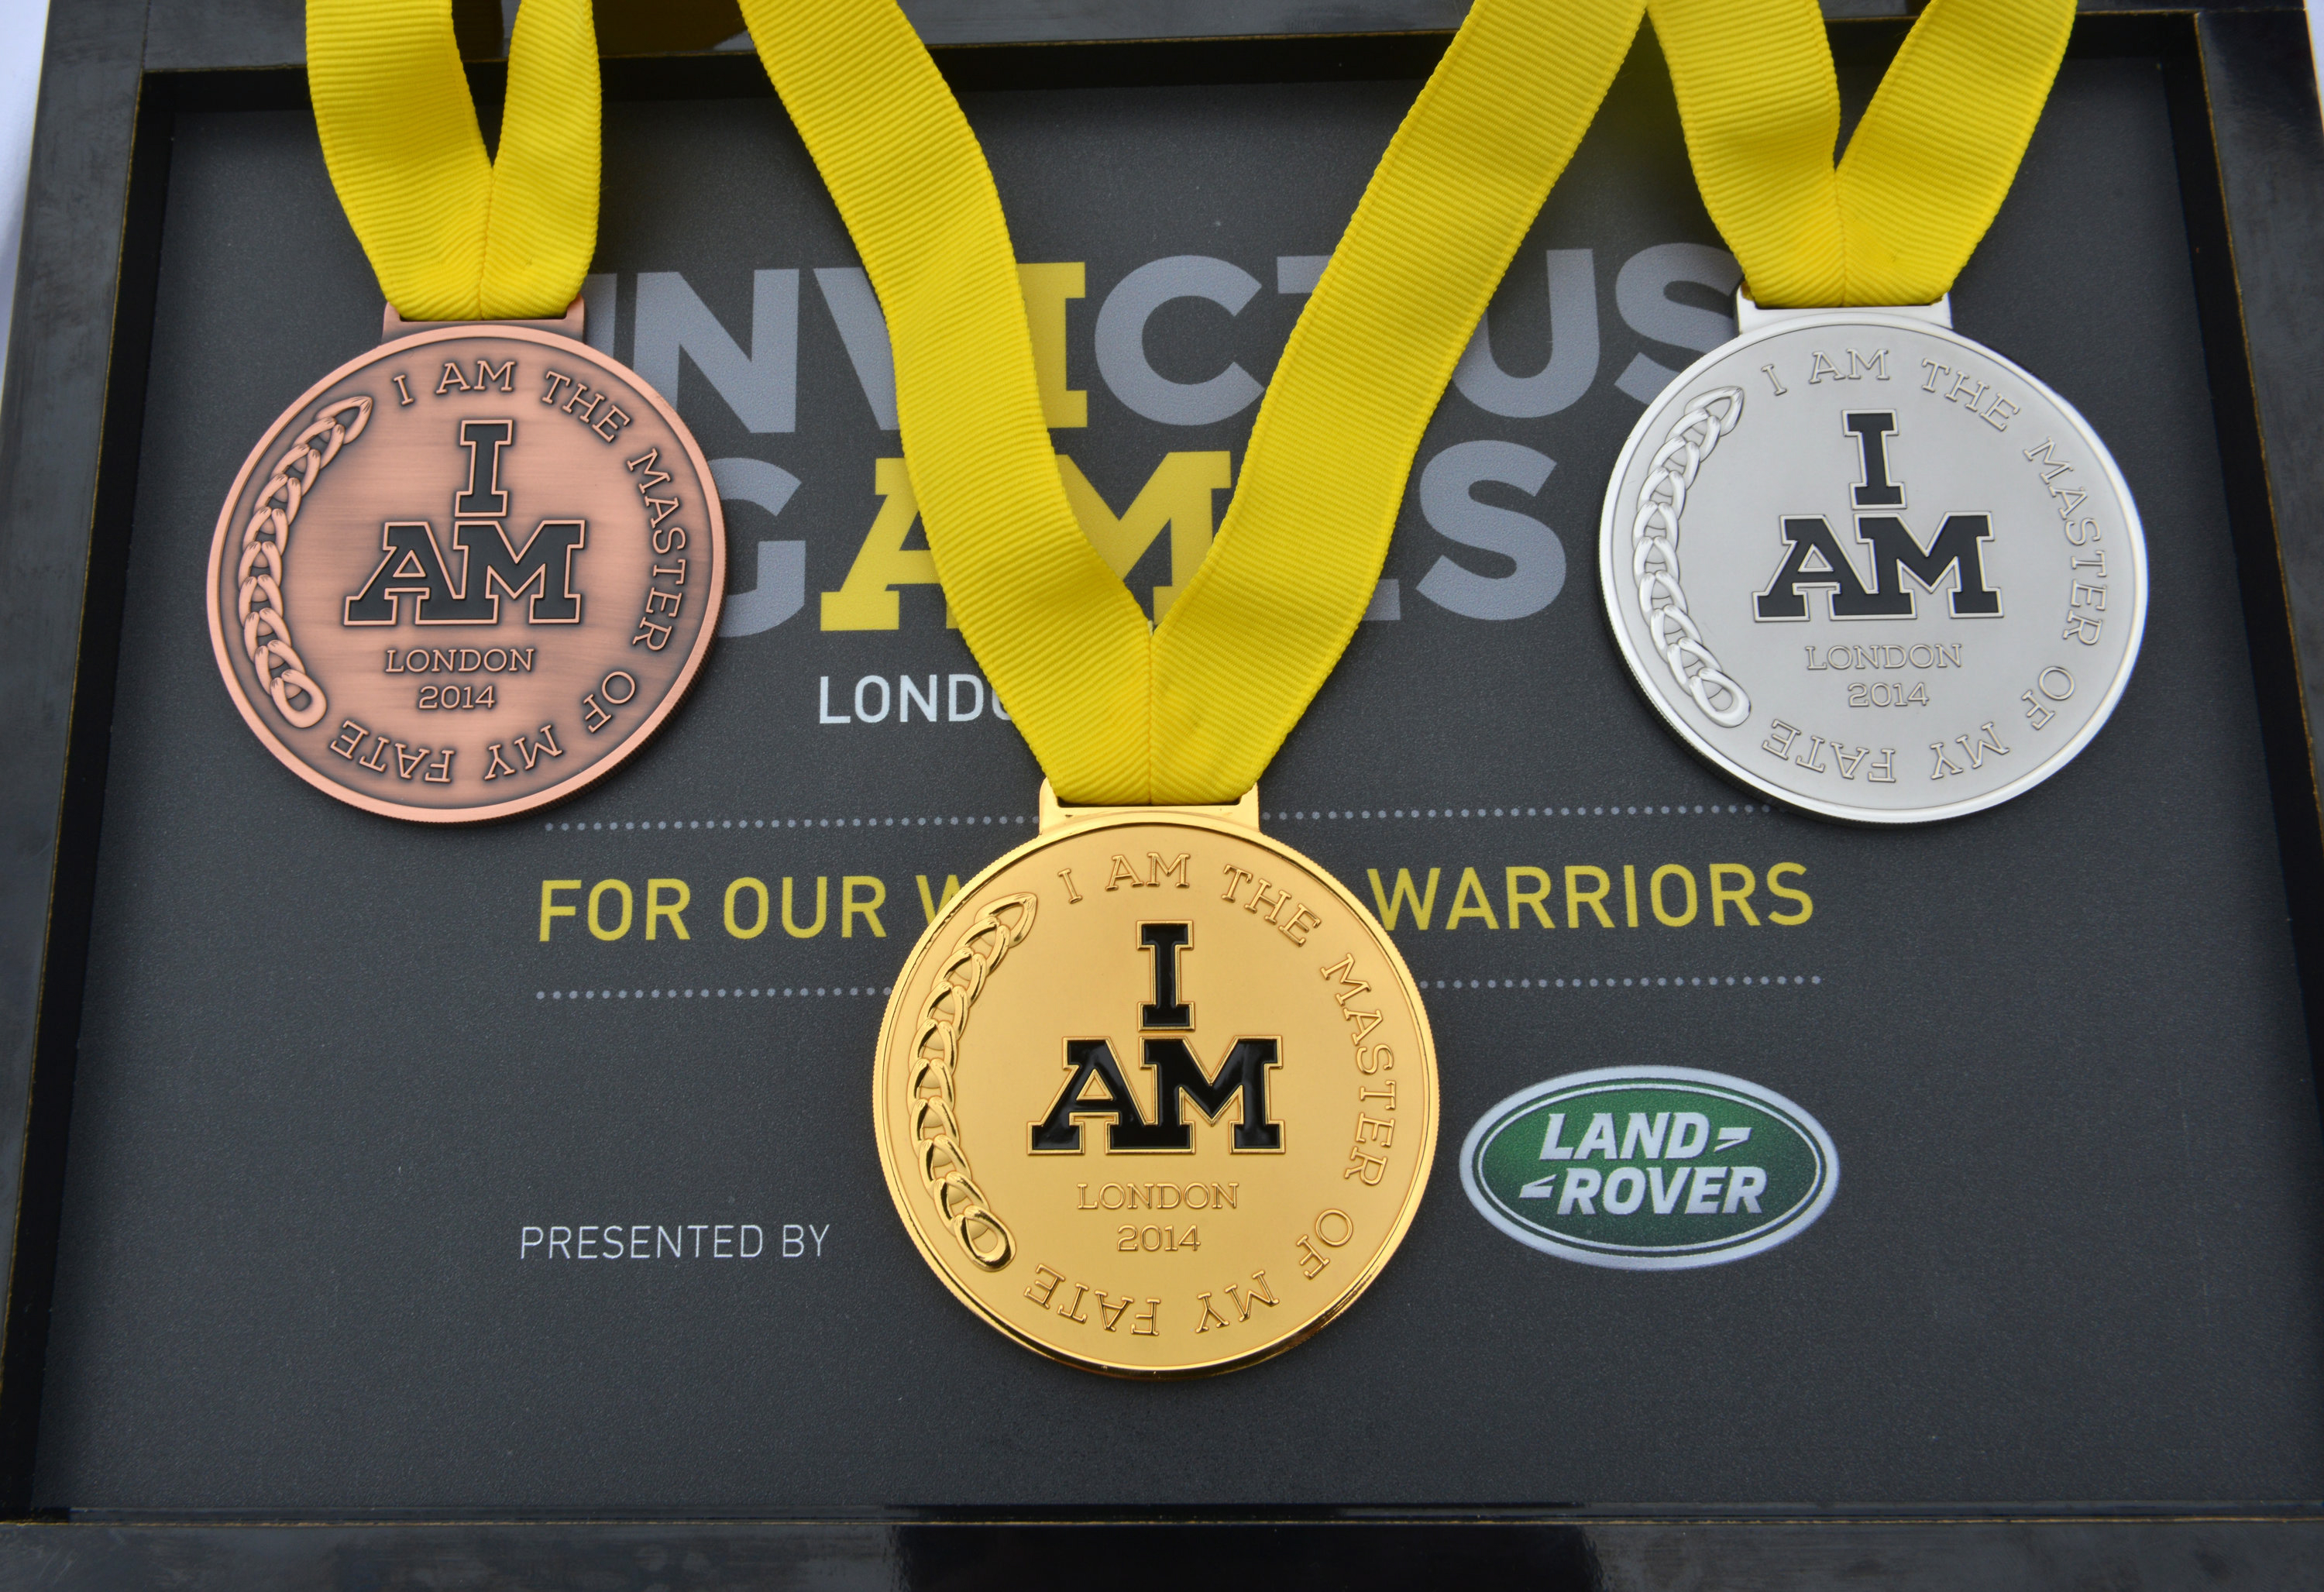 Złoty, srebrny i brązowy medal, z jednej z dyscyplin na Invictus Games in 2014. The first ever Invictus Games z Londynu 2014